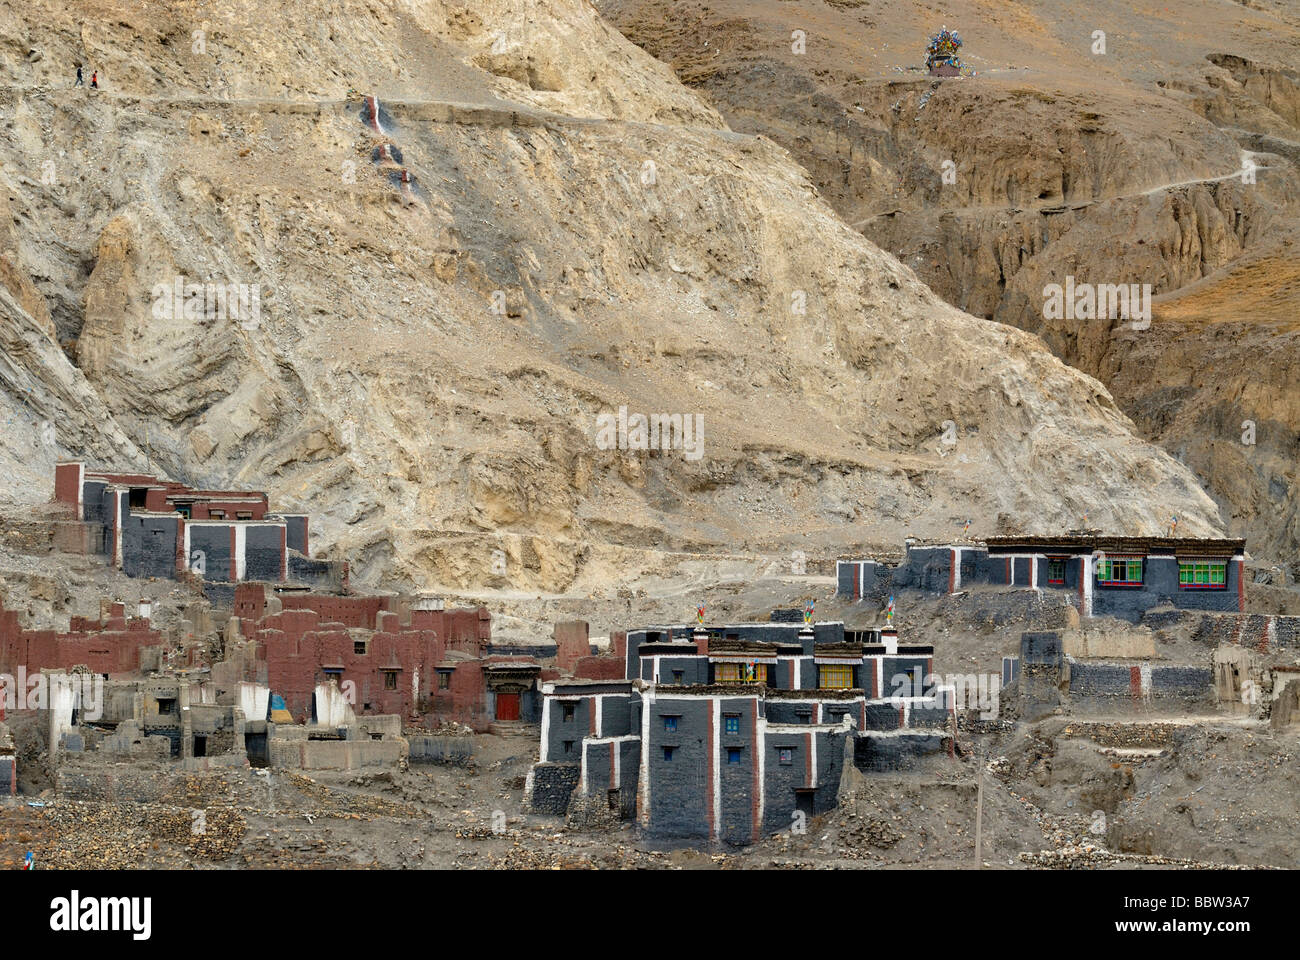 Monastery city Sakya with monastery and residential buildings in traditional architecture and Sakya colors, Tibet, - Stock Image